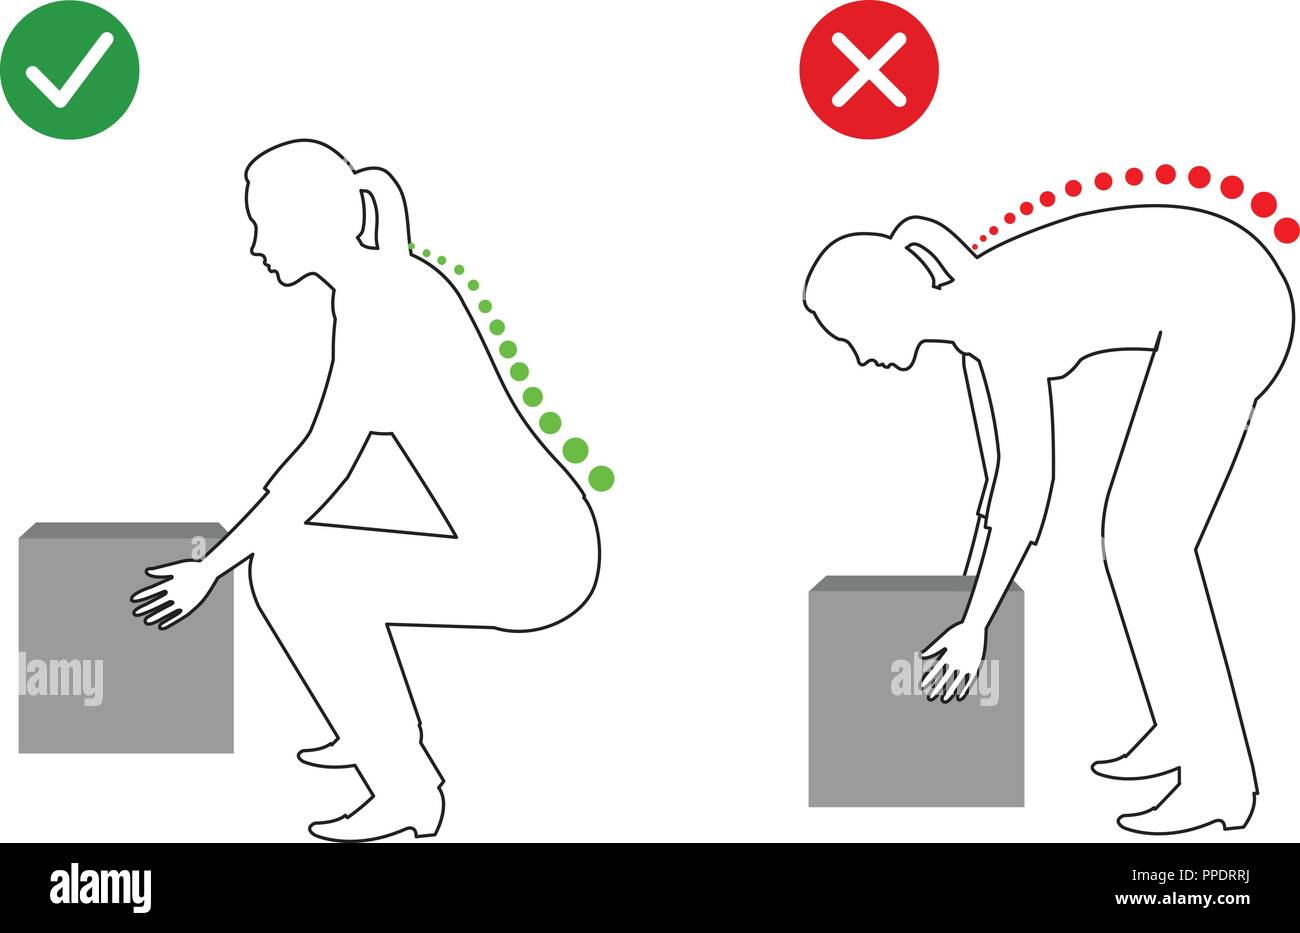 Ergonomics - Silhouette of correct posture to lift - Stock Image